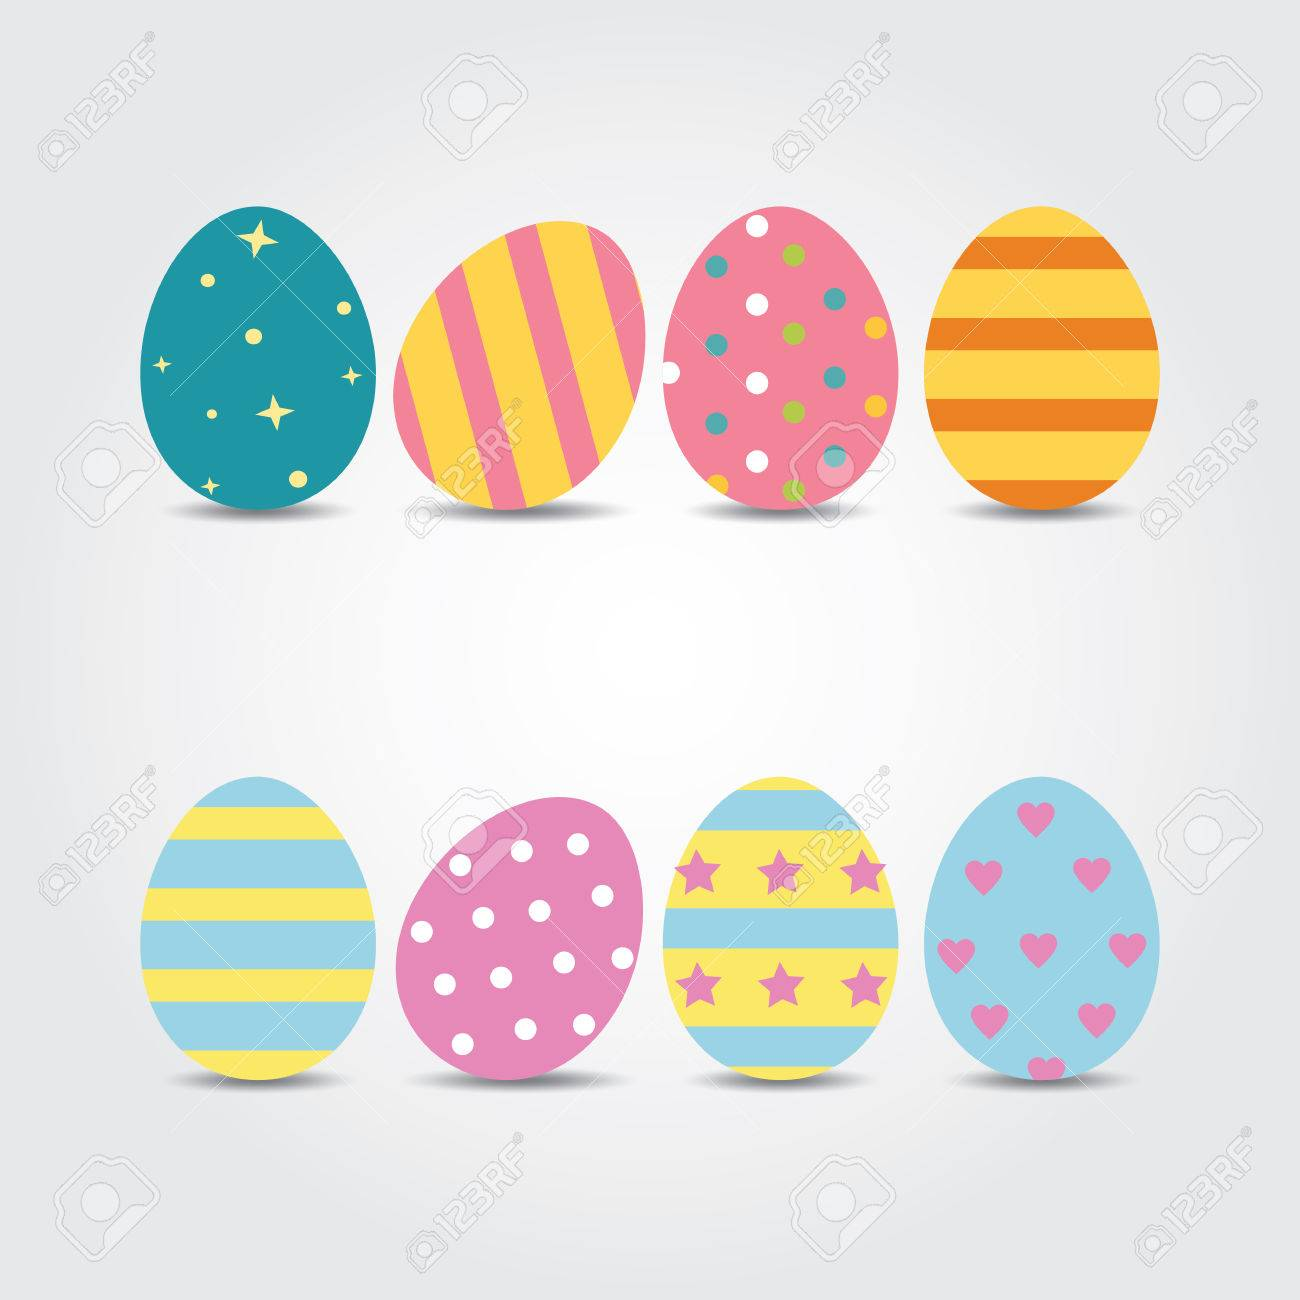 Easter Eggs Vector Illustration Easter Eggs Vector Icons Flat Royalty Free Cliparts Vectors And Stock Illustration Image 53841764